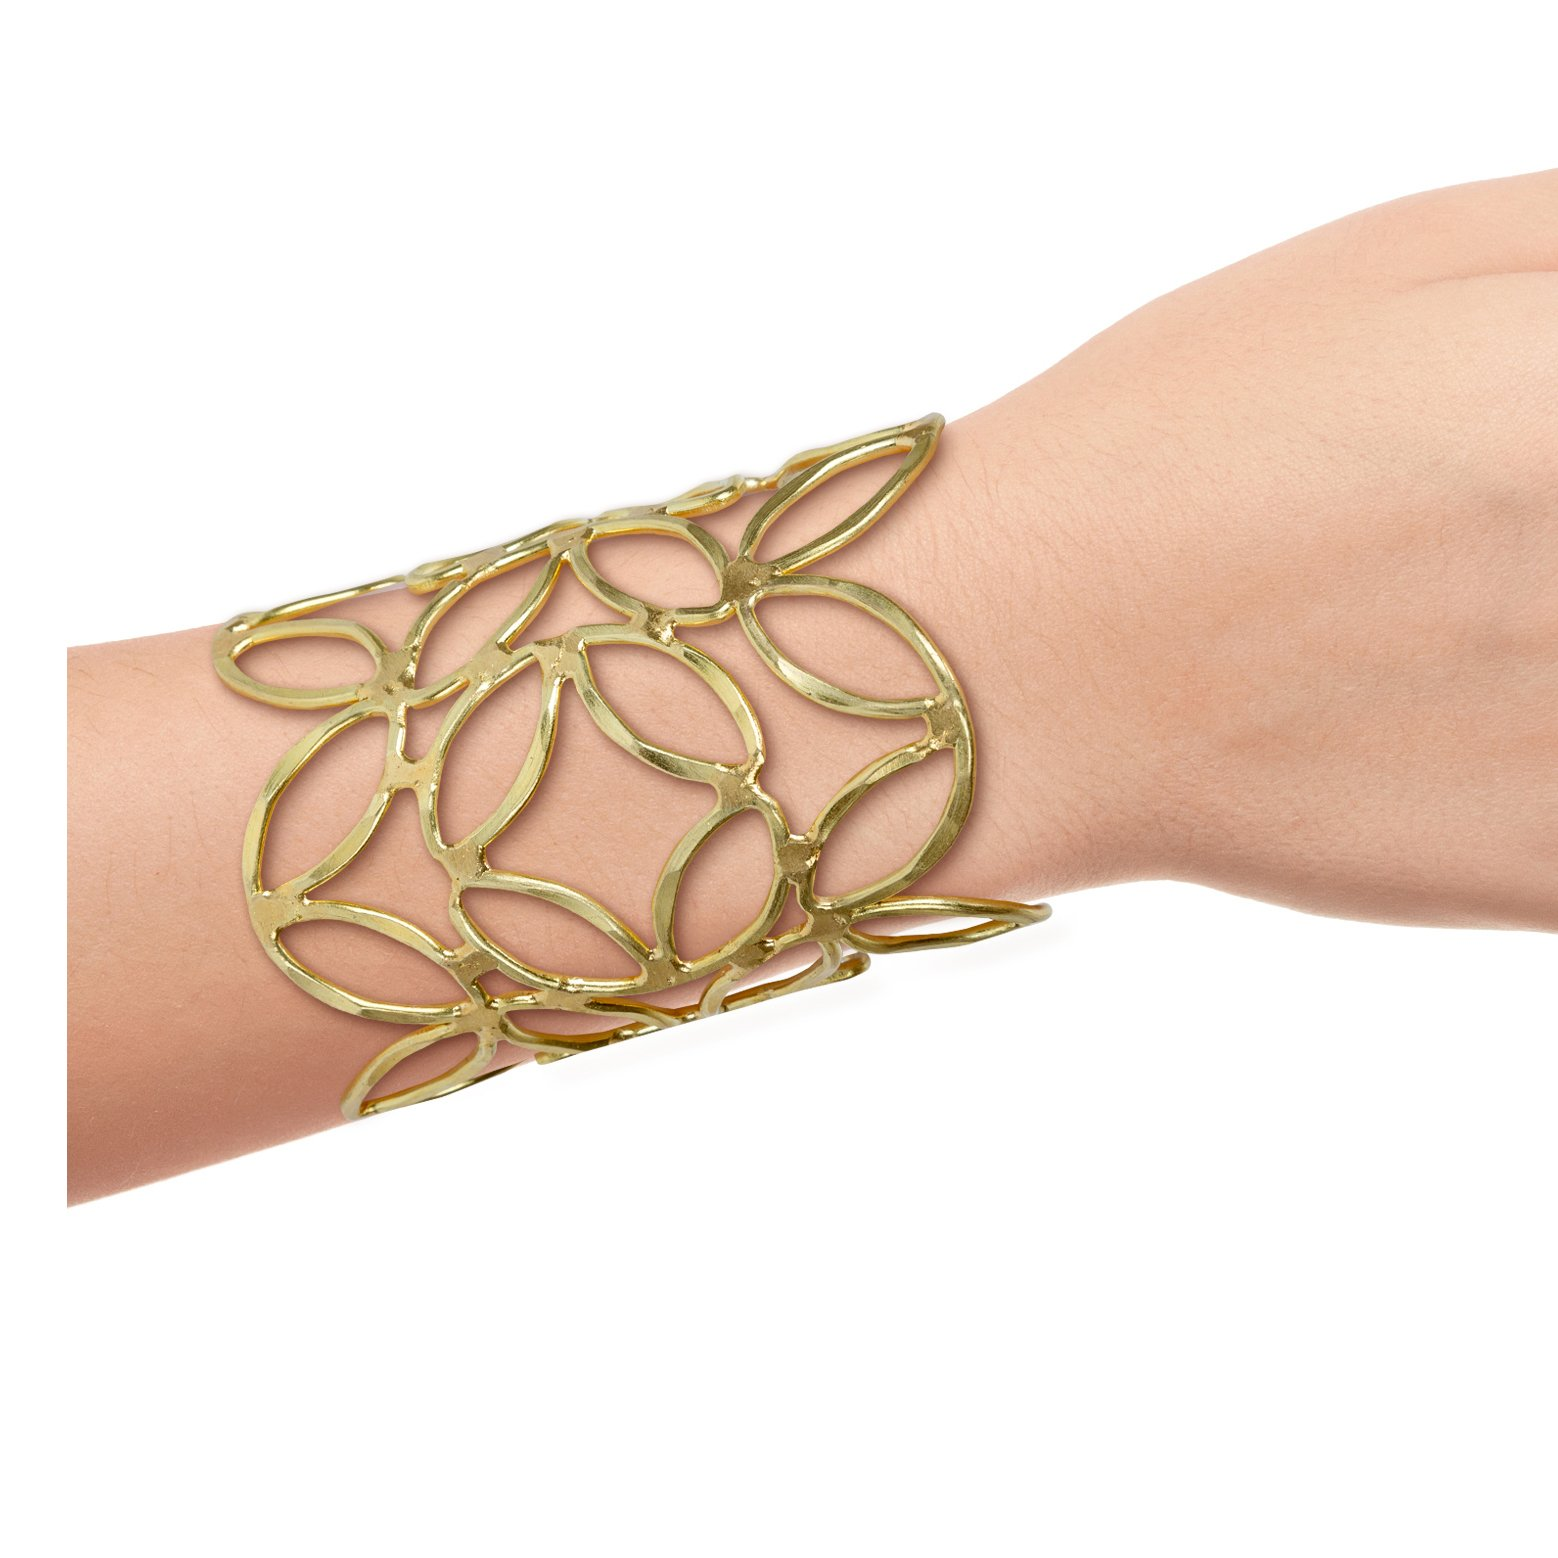 SPUNKYsoul New! Chic Gold or Silver Boho Bracelet for Women Bangle Cuff Collection Collection (Gold)